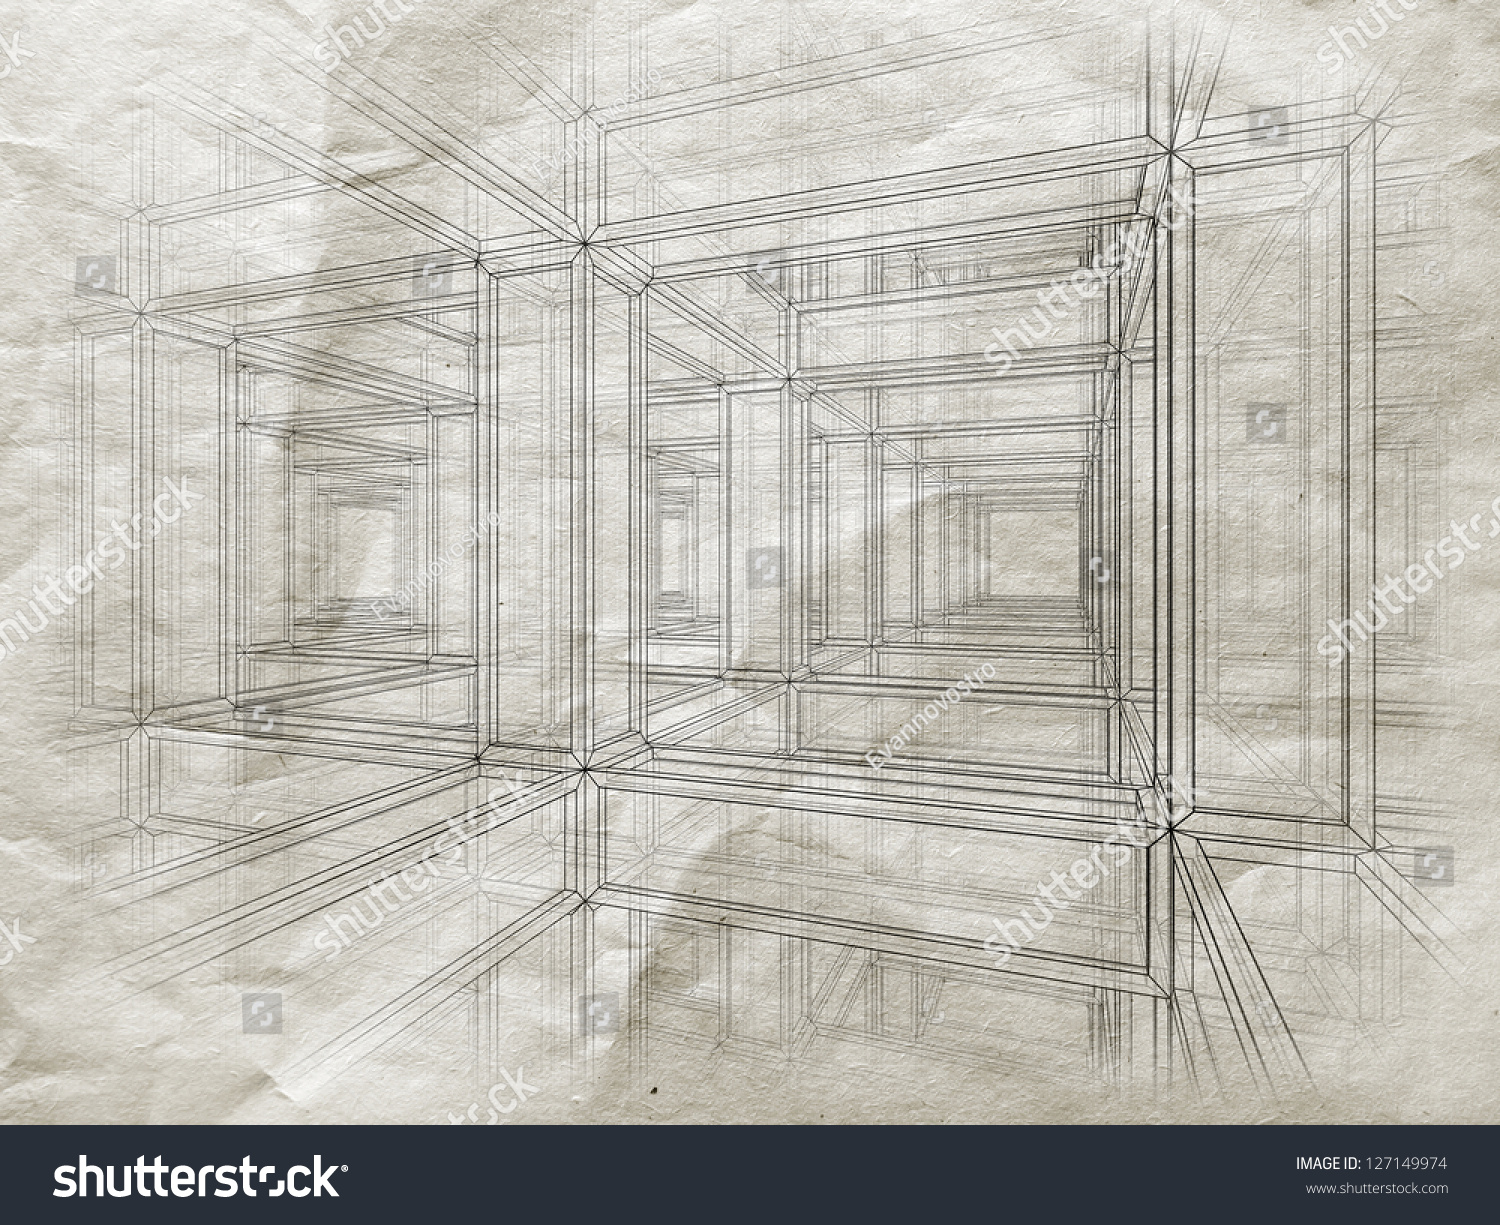 Blueprint perspective view abstract 3 d braced stock illustration blueprint with perspective view of an abstract 3d braced construction on old gray paper malvernweather Choice Image